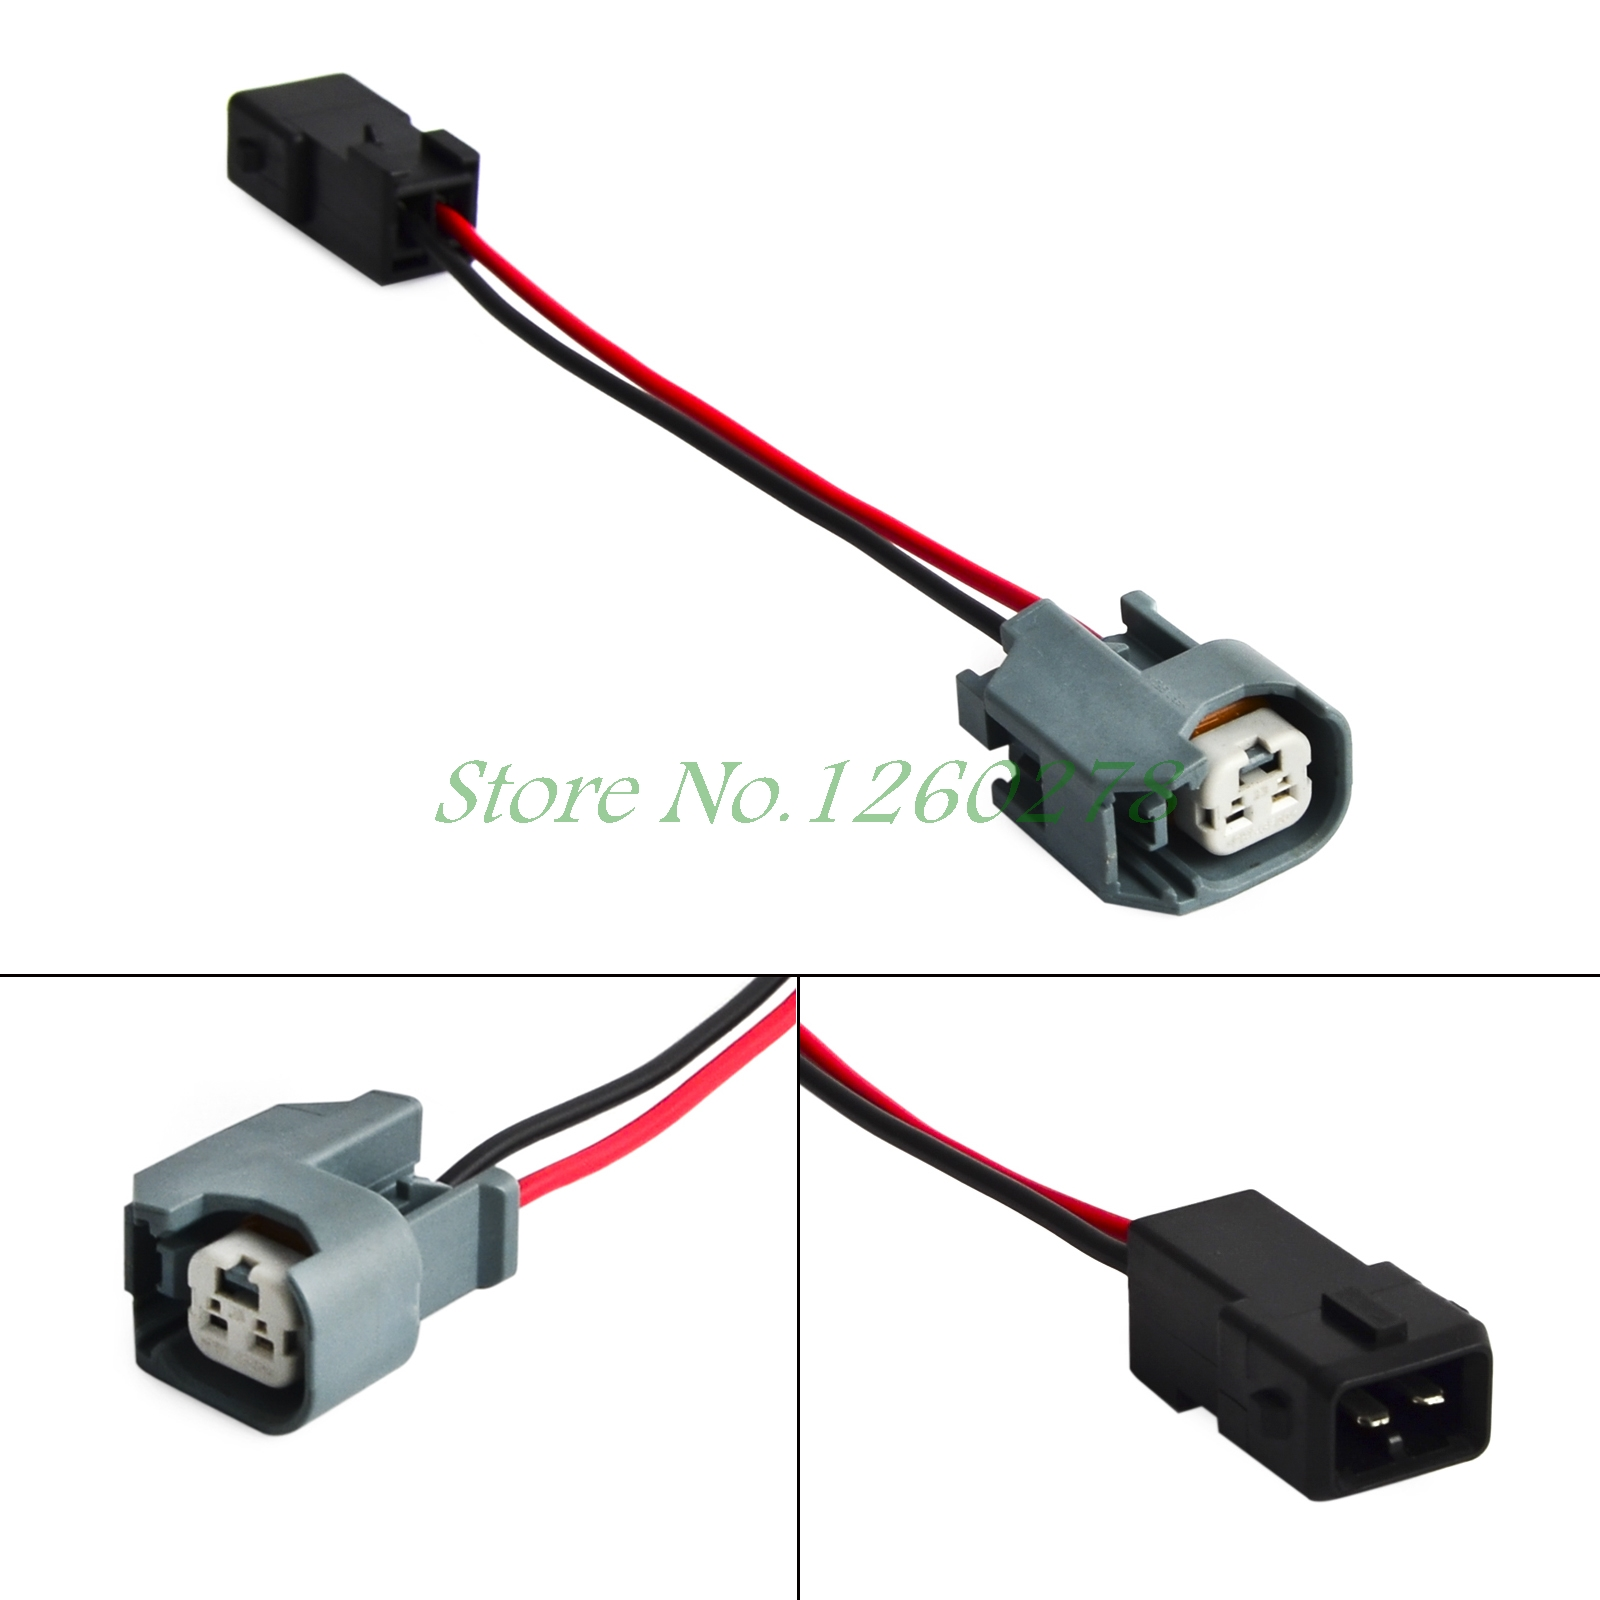 Engine Fuel injector wire Harness Connectors Adapter